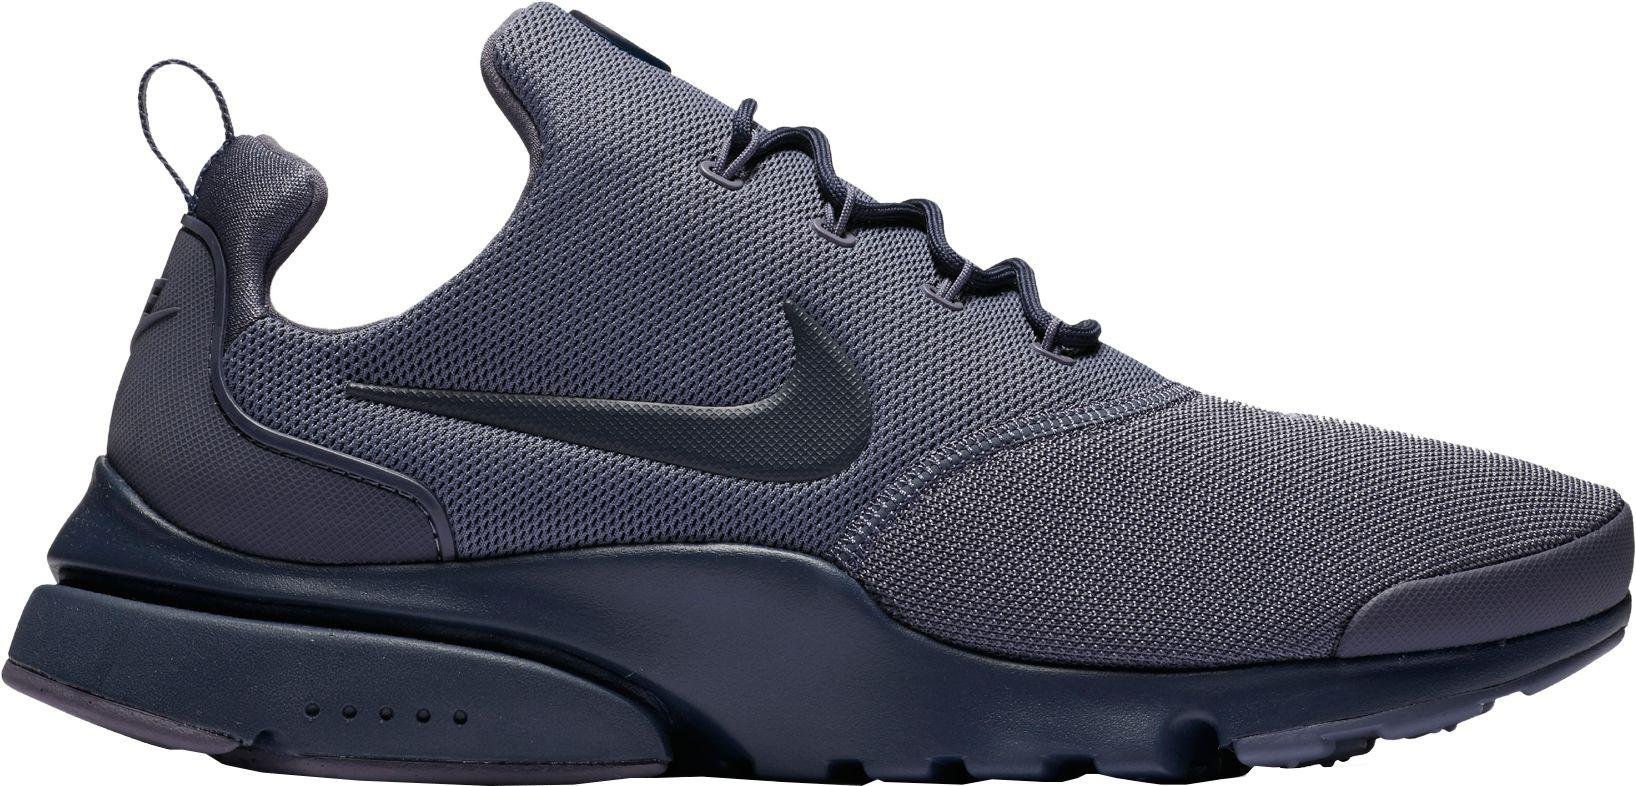 076b54a9d Lyst - Nike Presto Fly Shoes in Blue for Men